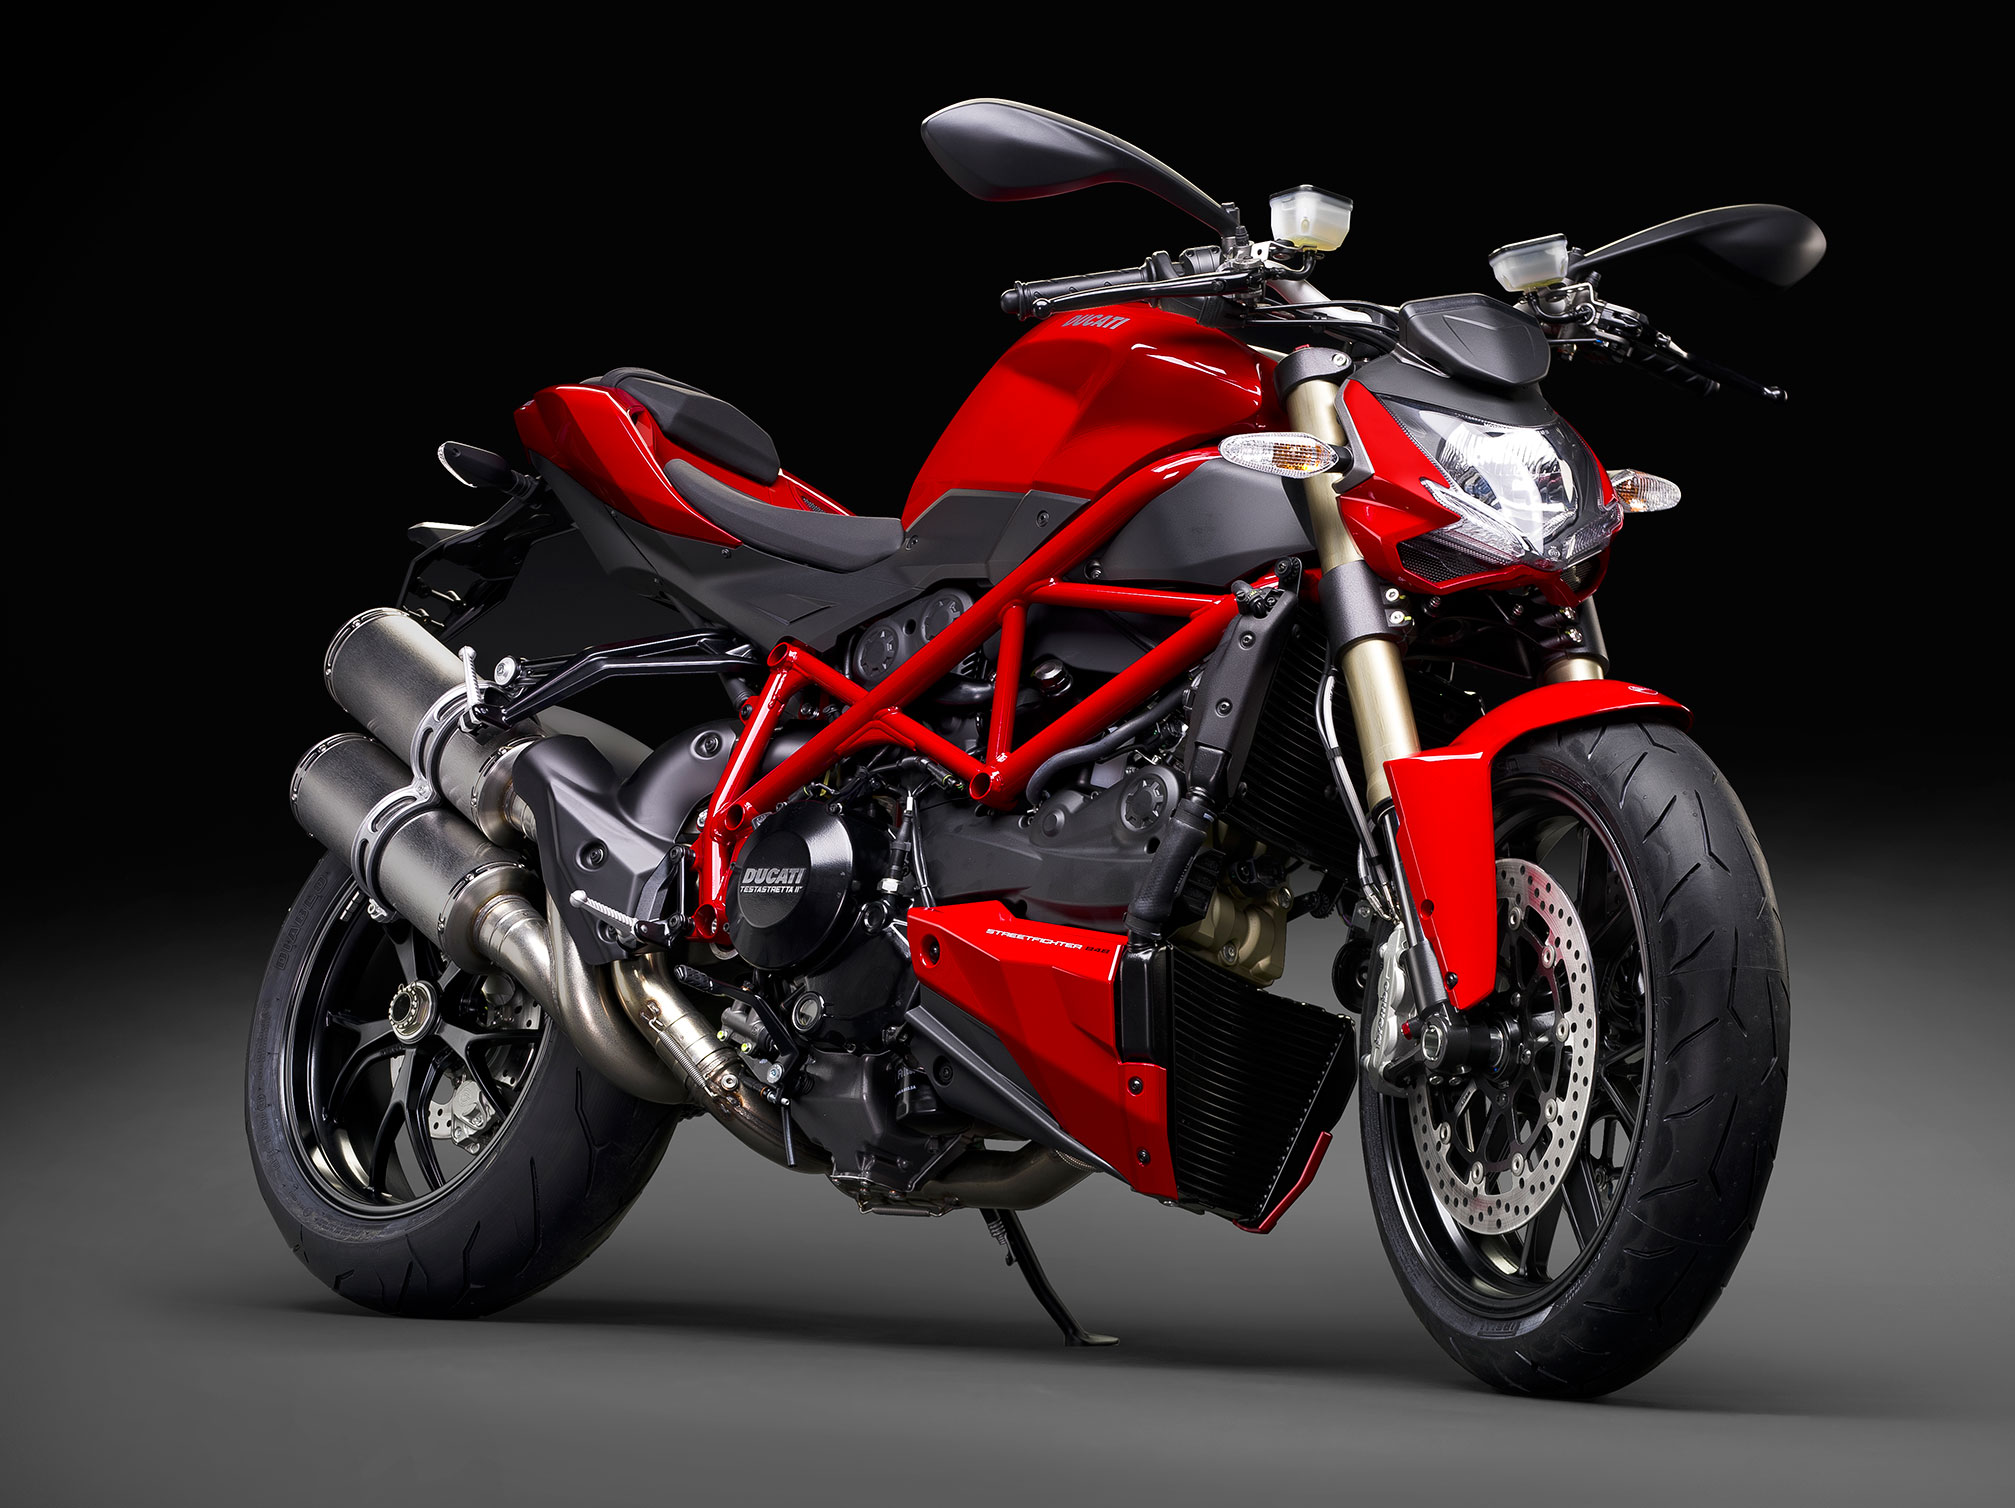 Superb Ducati Streetfighter 848 2015 Wallpapers #13408 .